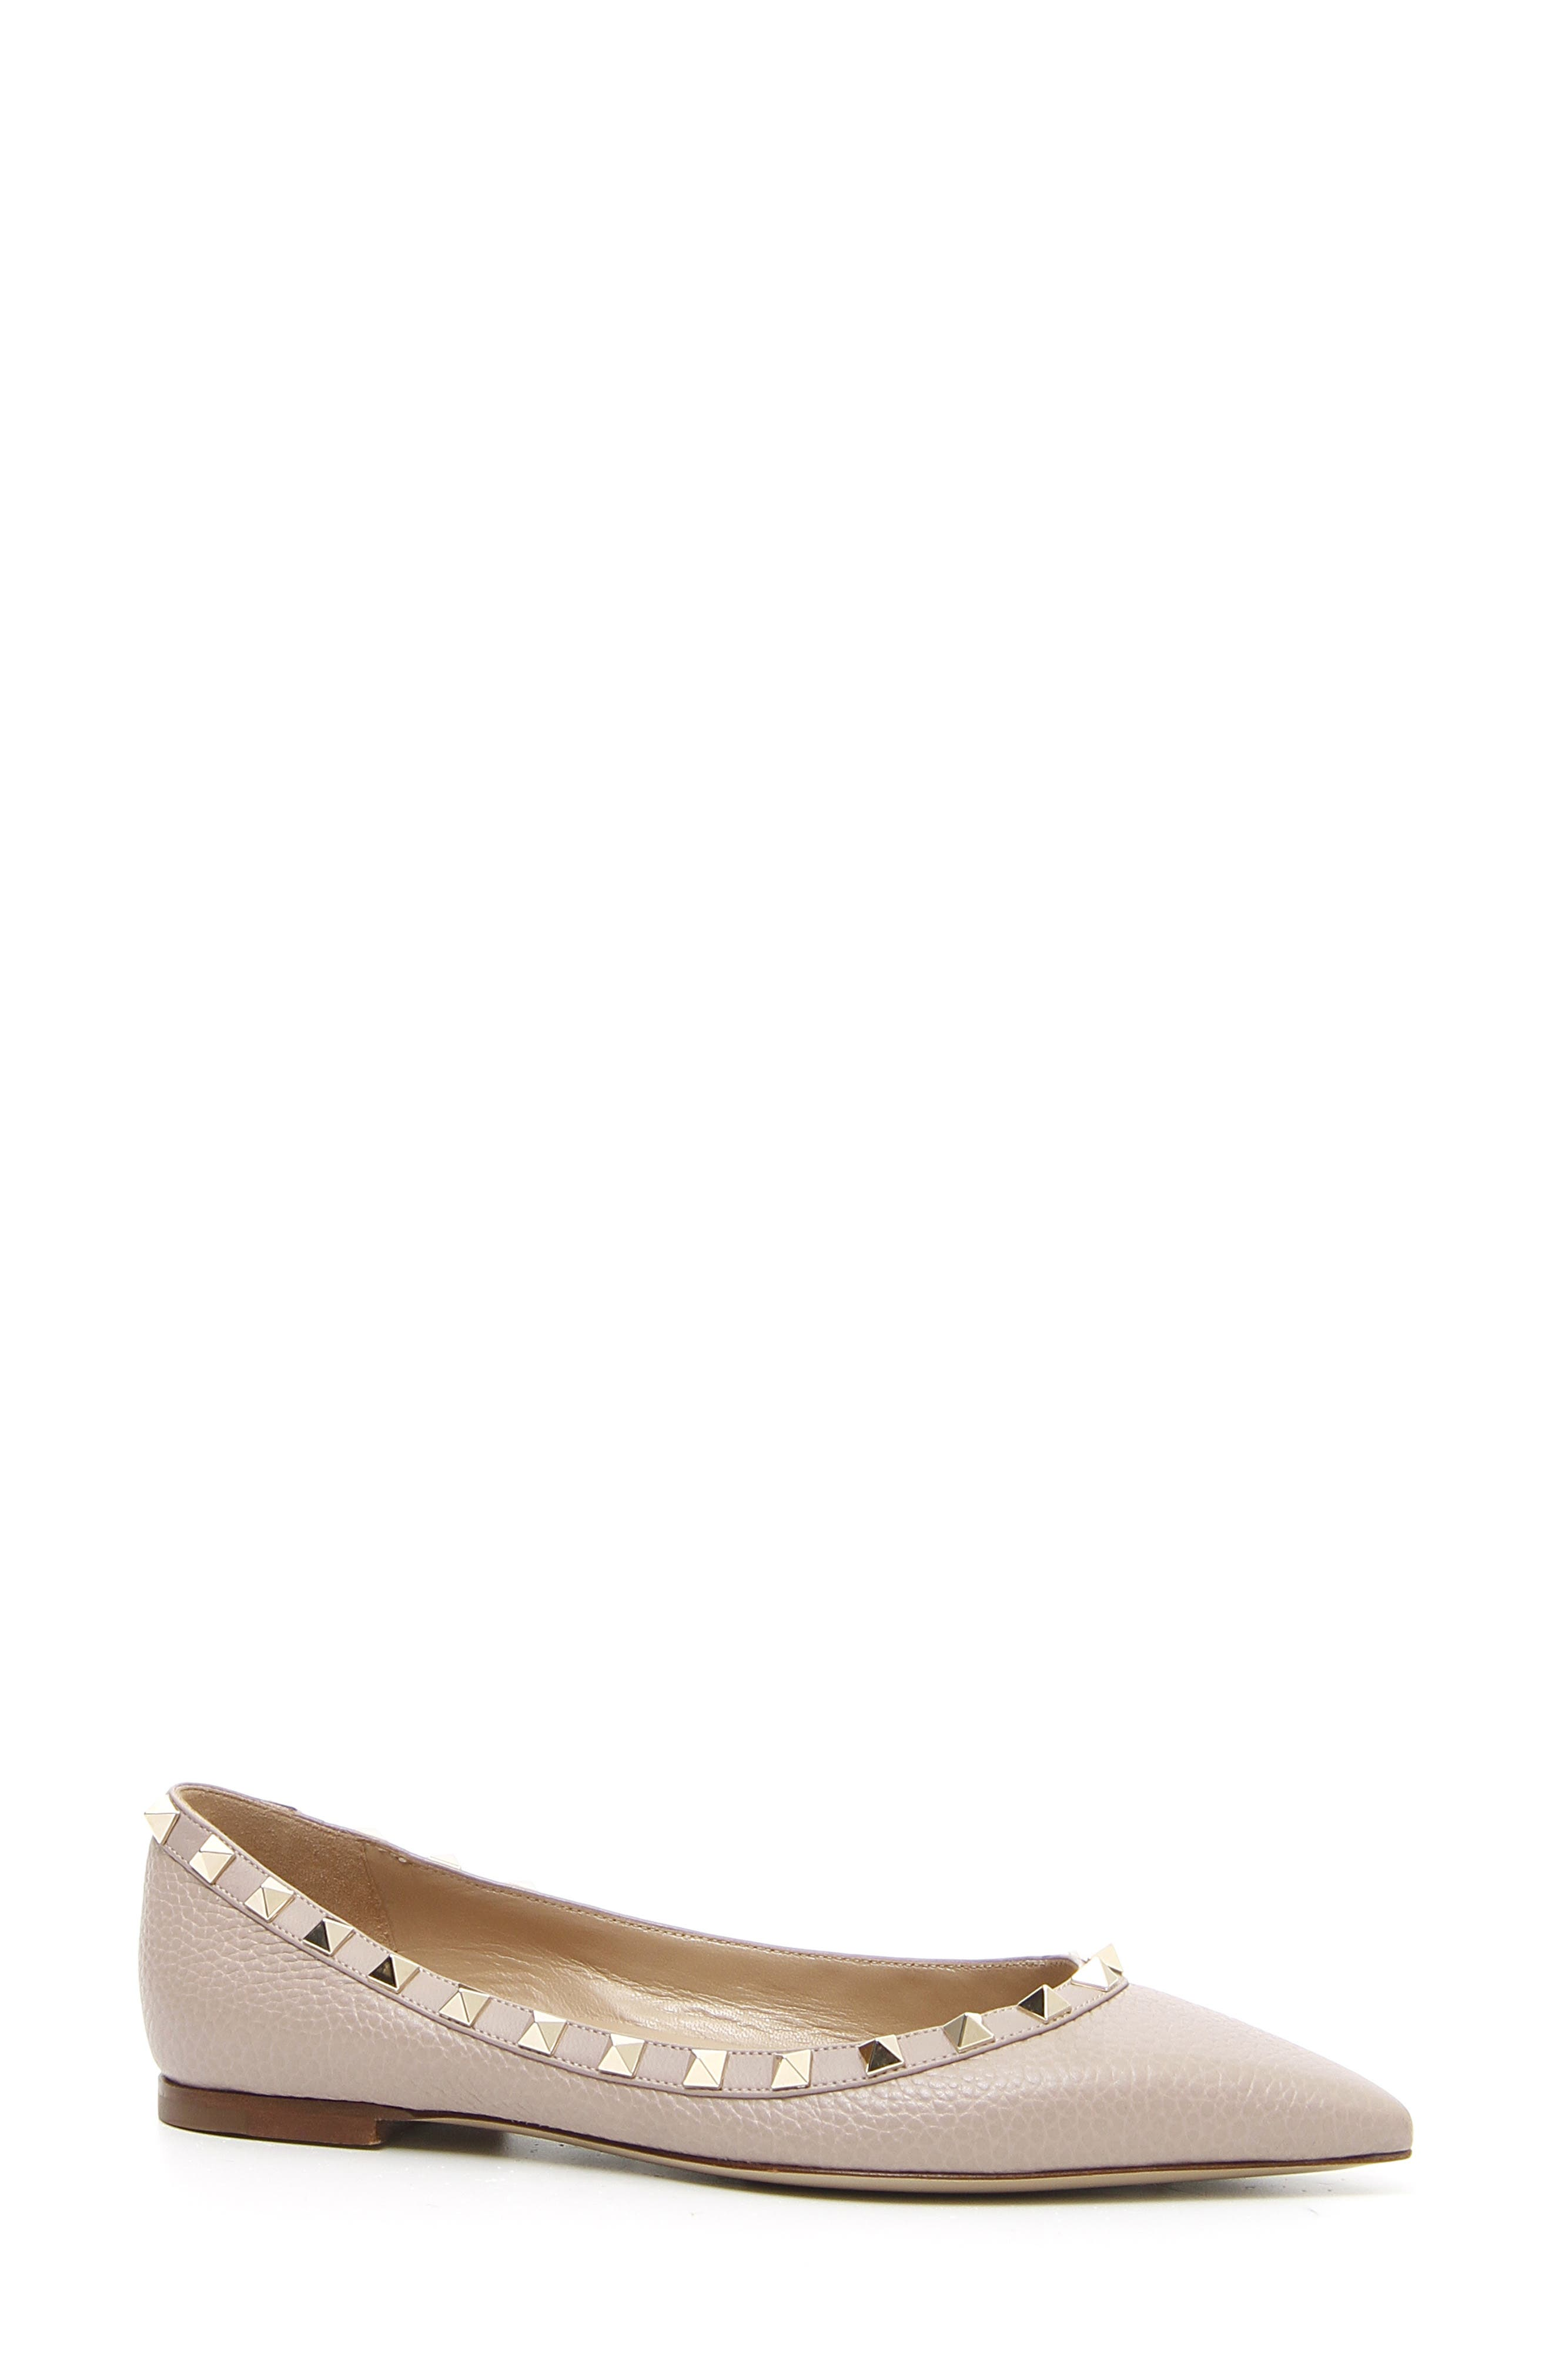 Rockstud Pointy Toe Flat,                             Main thumbnail 1, color,                             POUDRE